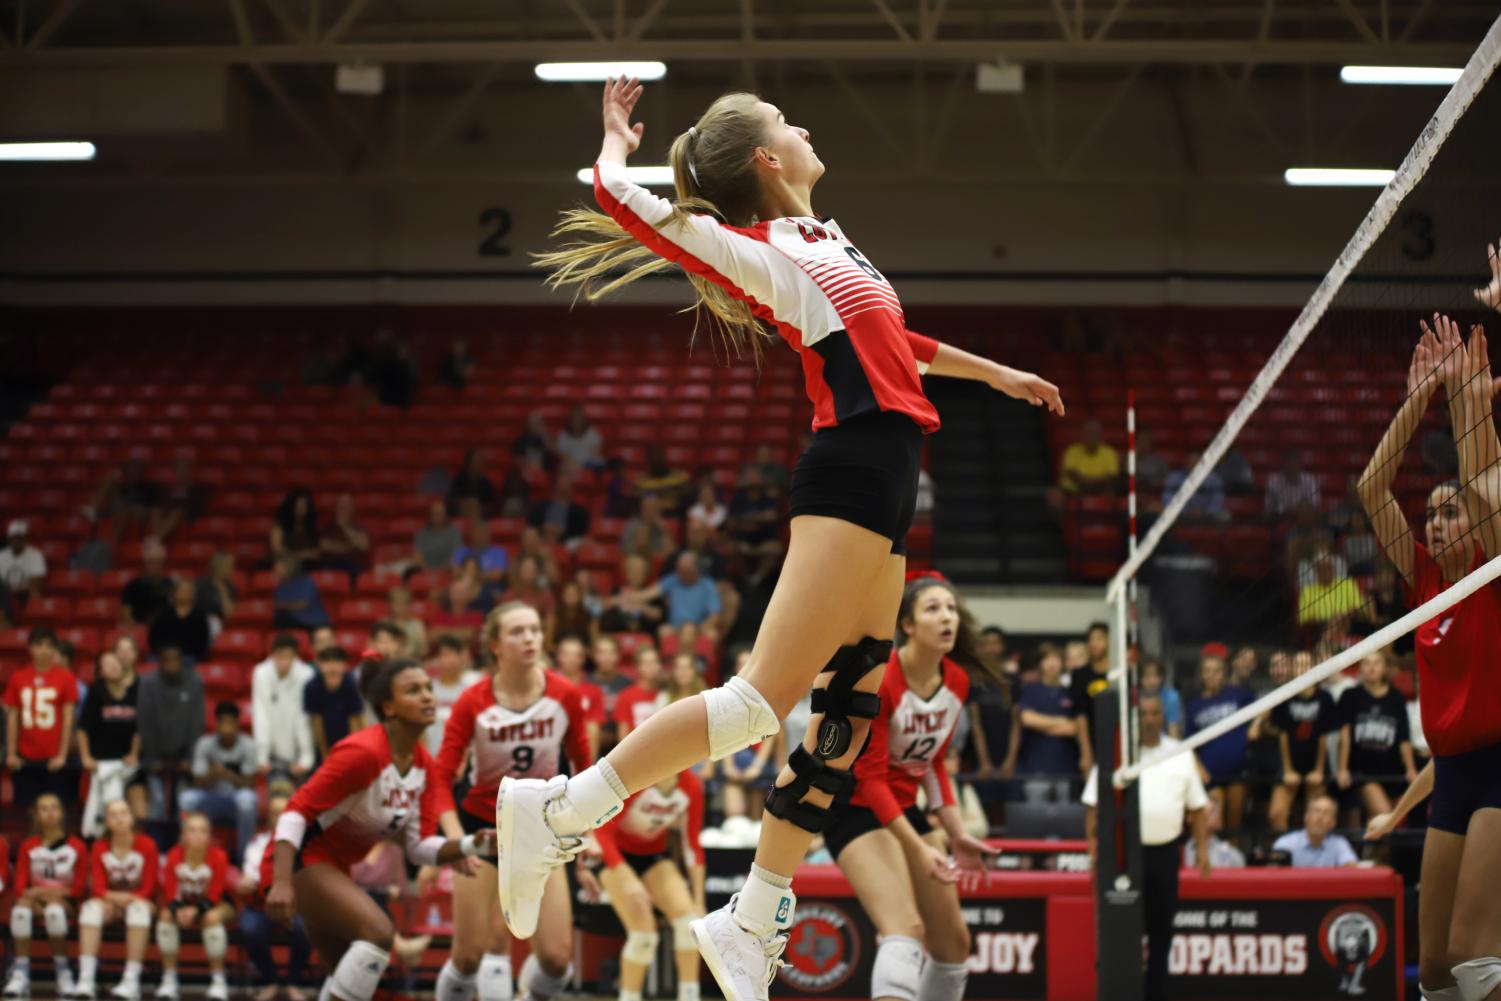 Junior+Brynn+Egger+elevates+to+hit+the+ball+over+Mckinney+Boyd+defenders+at+the+right+side+hitter+position.